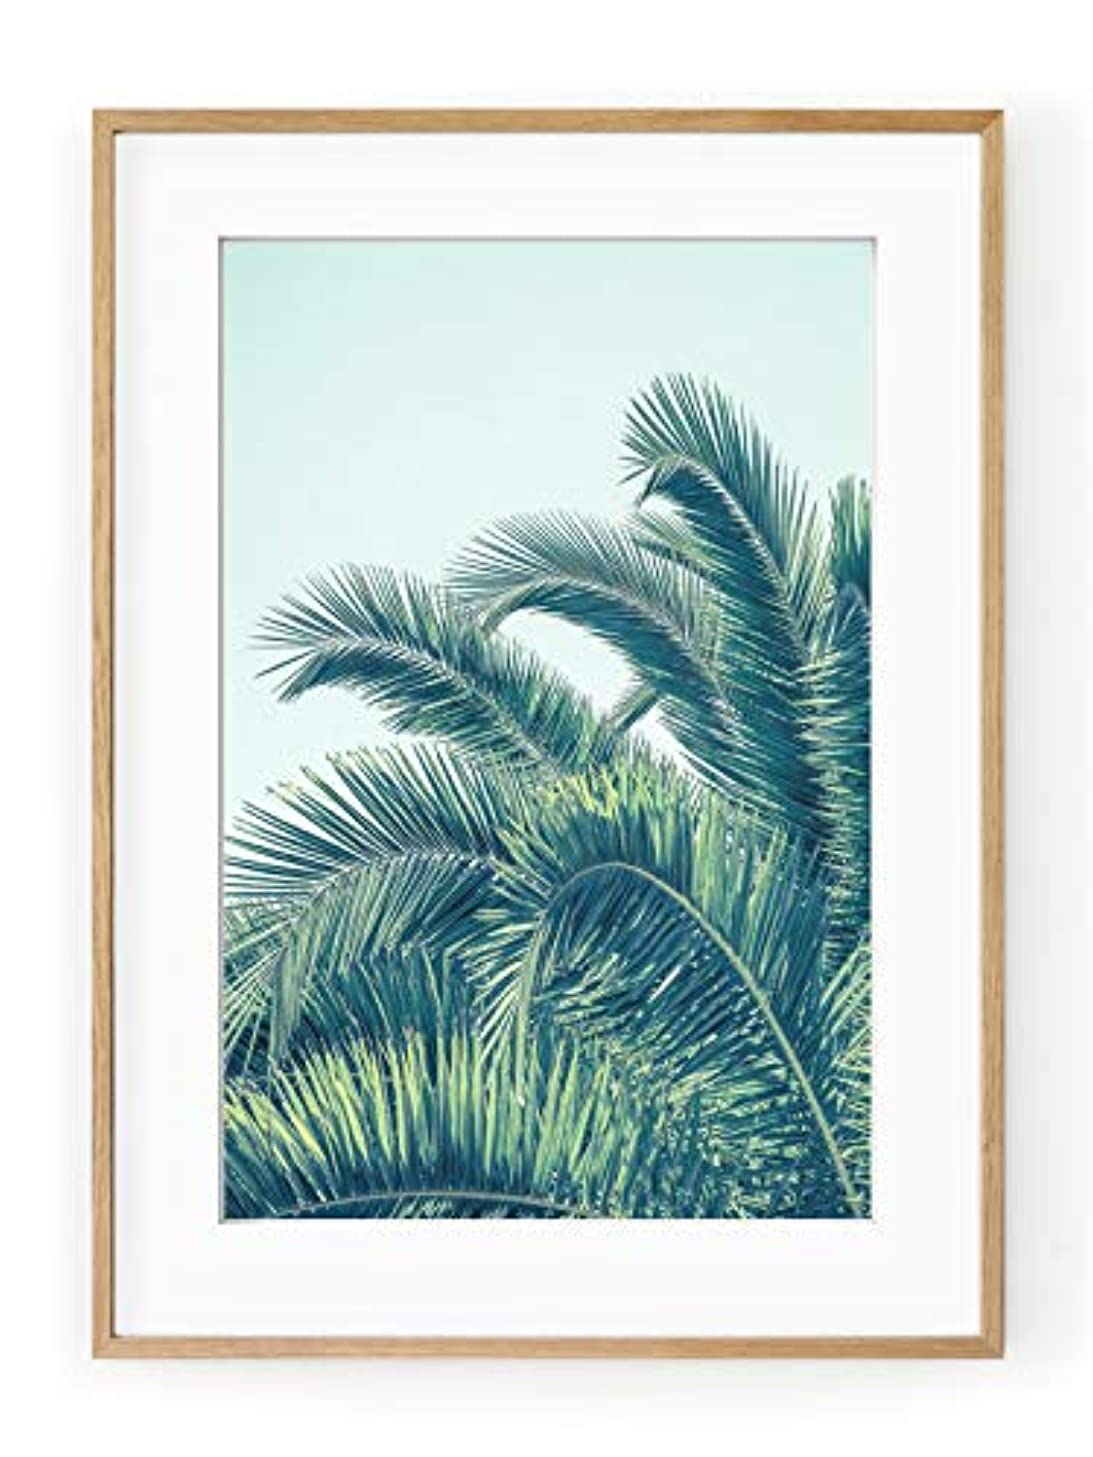 Palm Tree with Black Satin Aluminium Frame and Mount Turquoise, Multicolored, 50x70